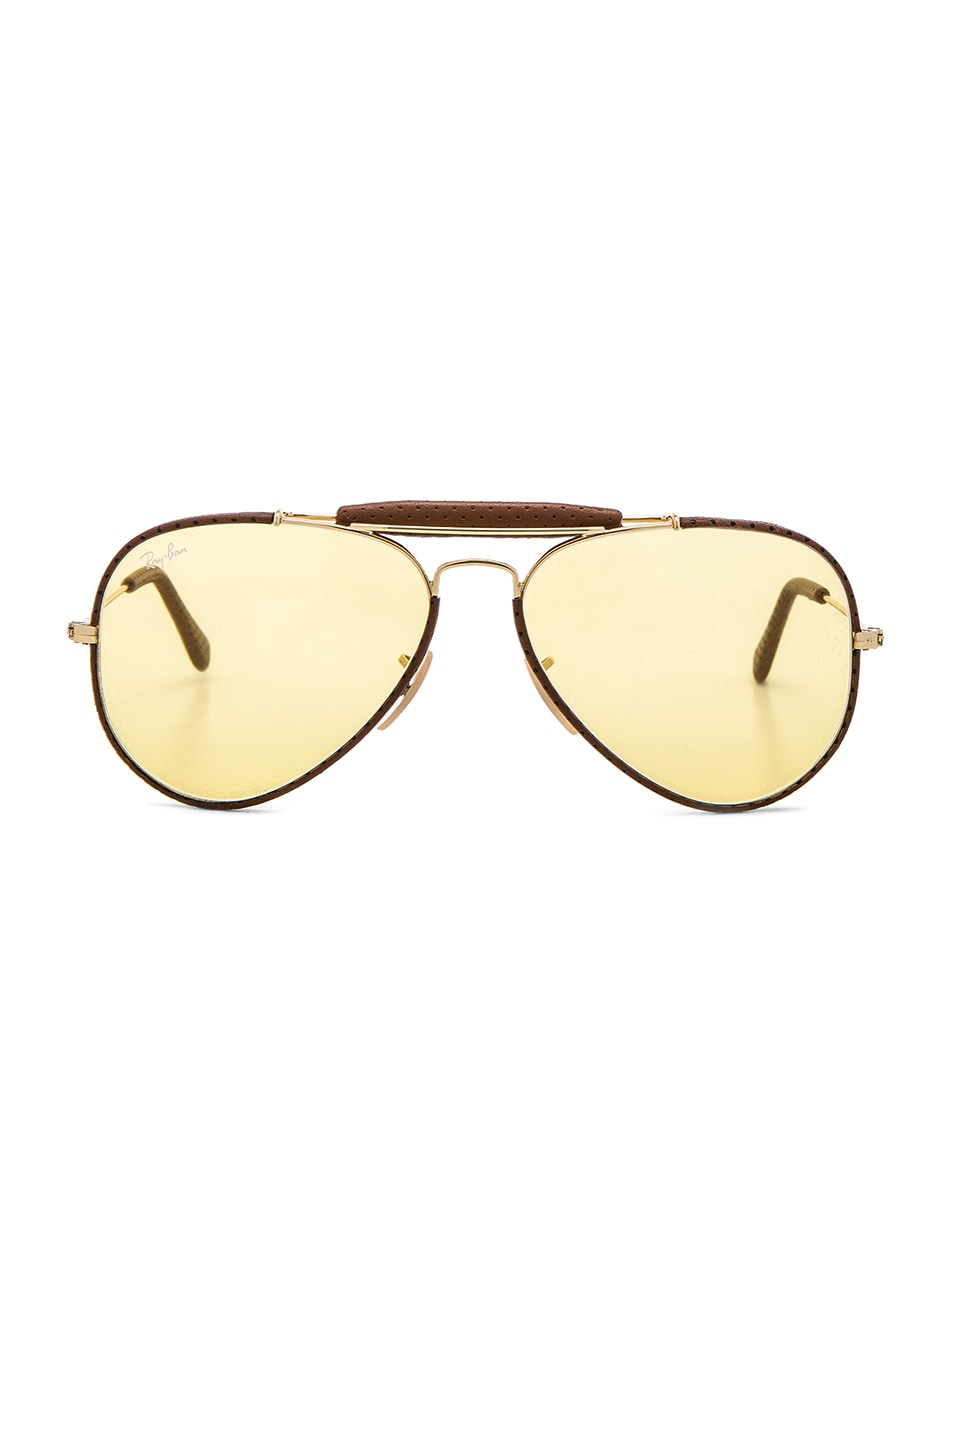 ray ban aviator sunglasses from the leather collection